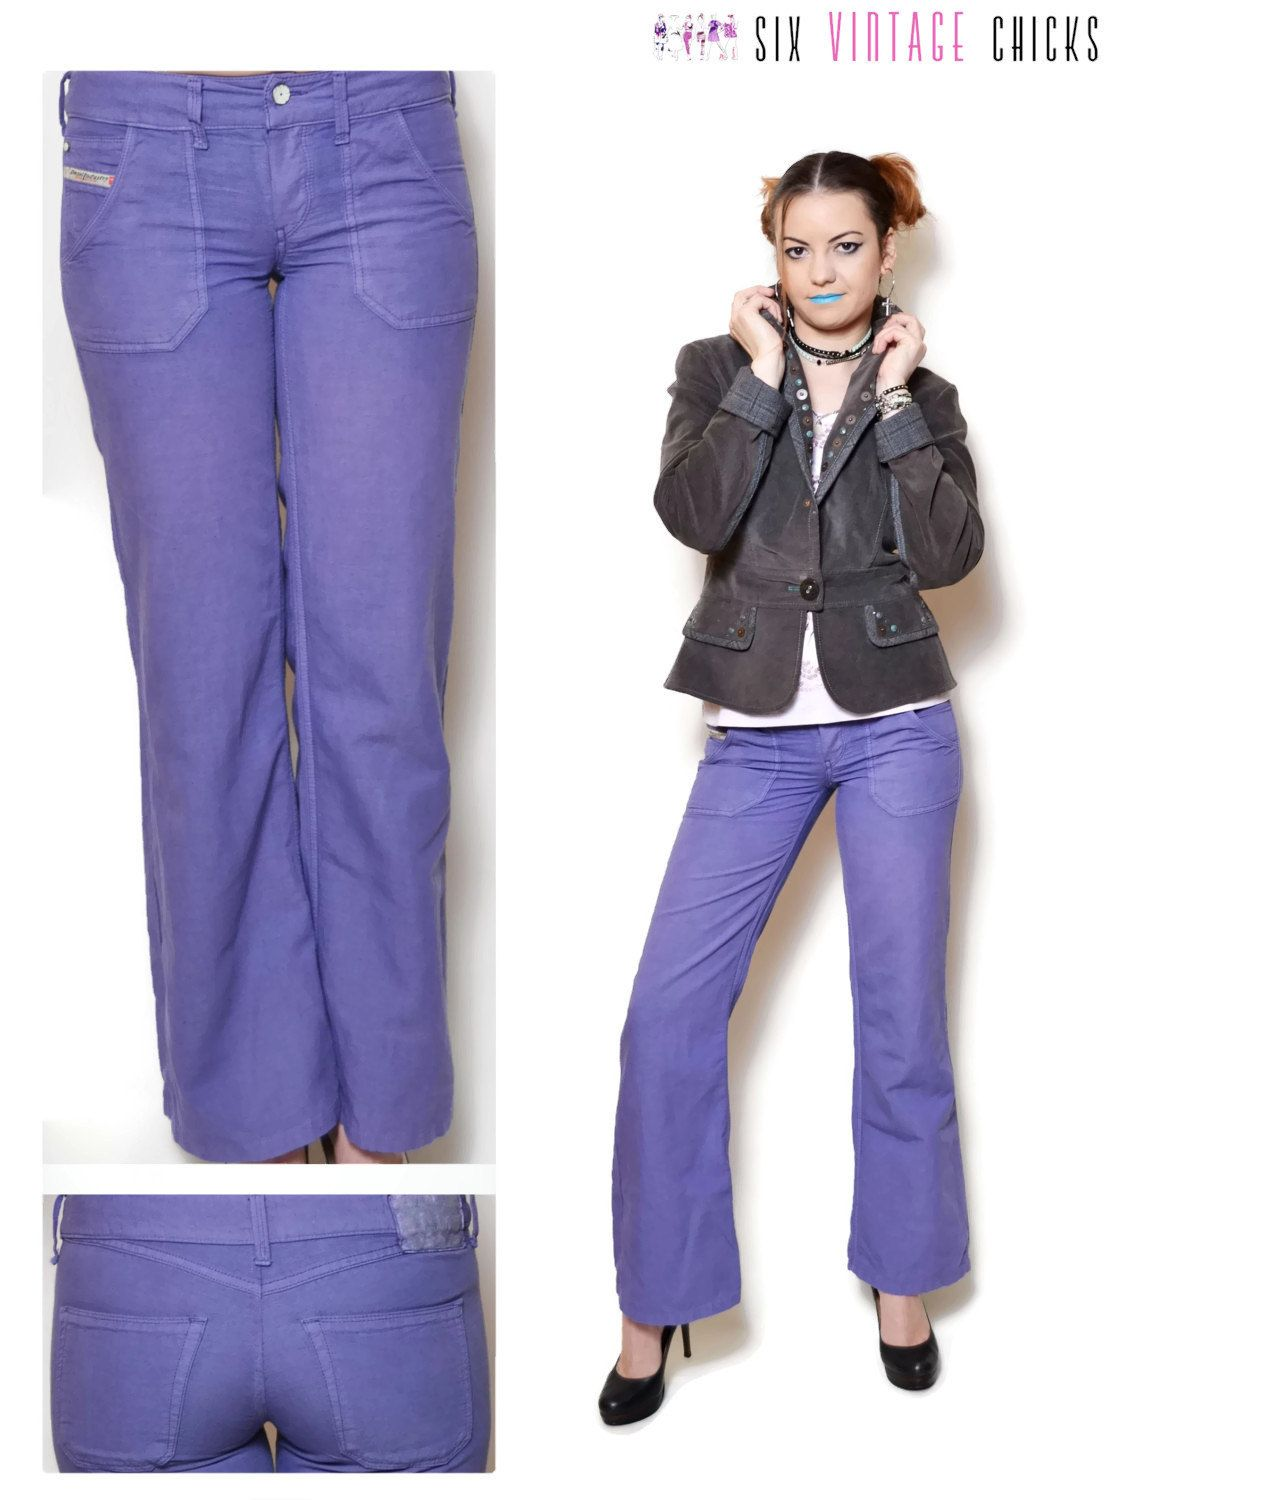 37f517da hippie pants women bell bottoms purple pants low rise pants diesel jeans  clothing unique clothing 90s clothing minimalist womens trousers XS by ...